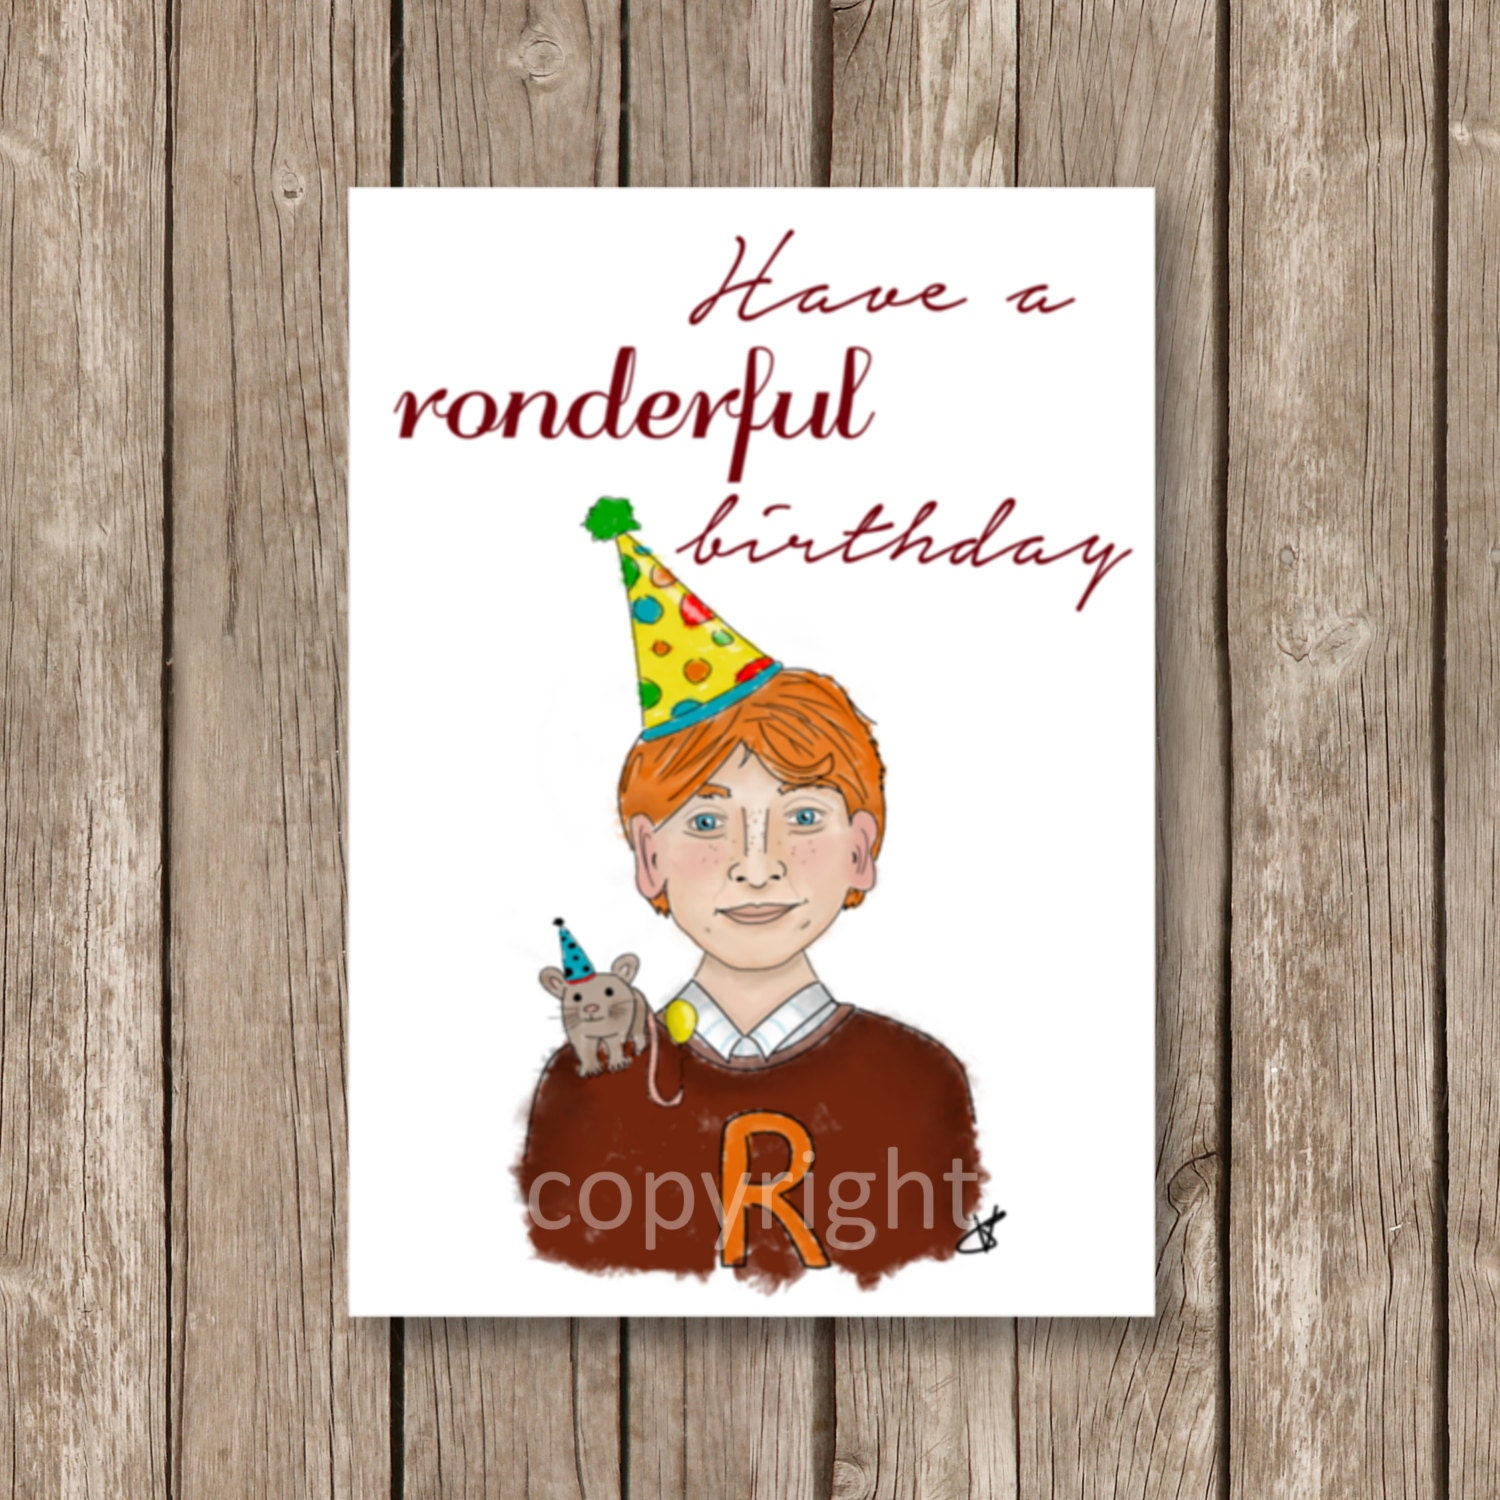 Printable Birthday Card Harry Potter Ronderful Birthday